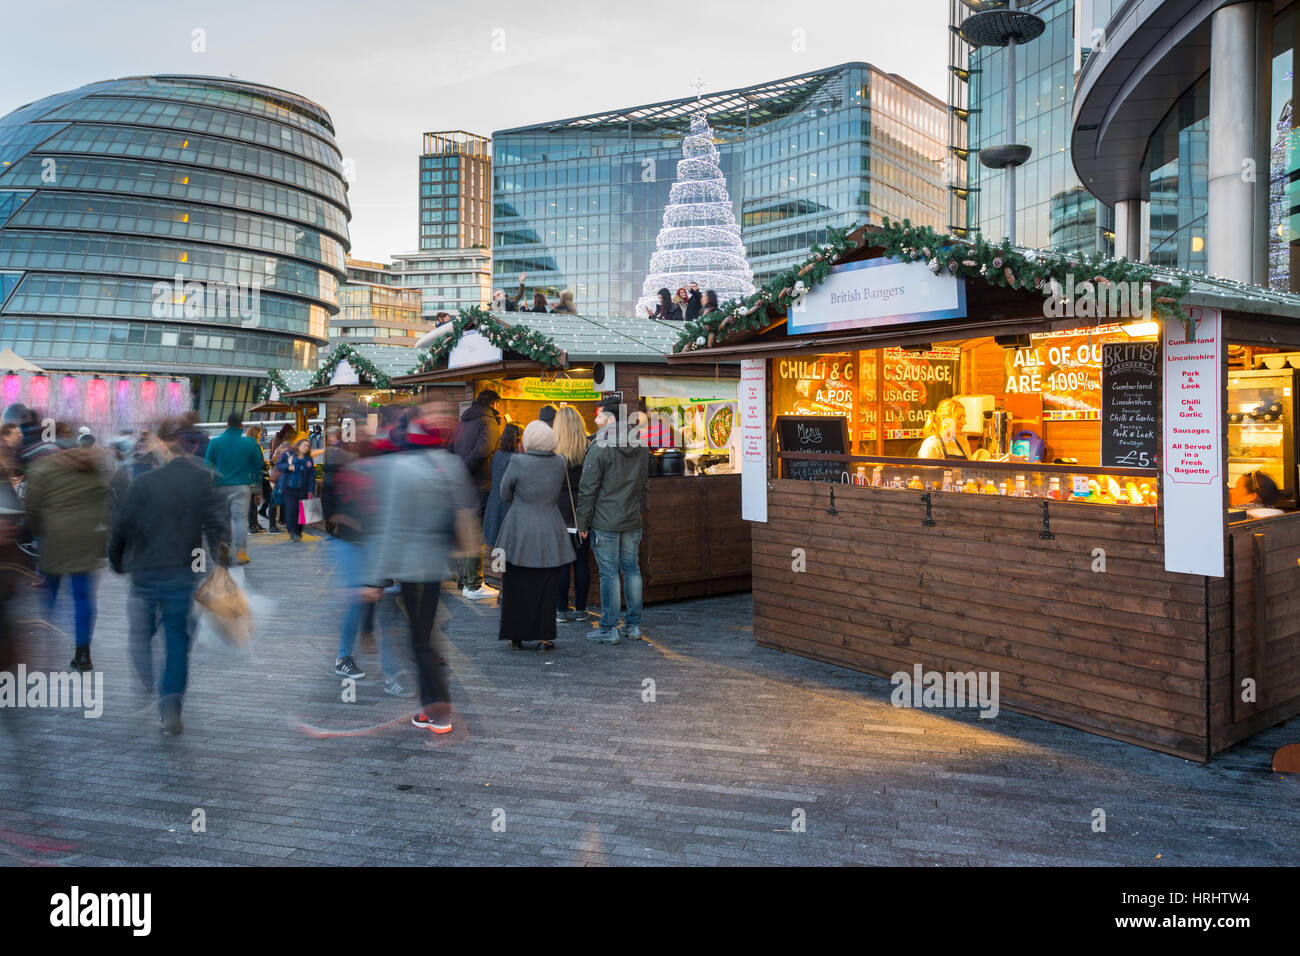 Christmas Market, The Scoop and City Hall, South Bank, London, England, United Kingdom - Stock Image